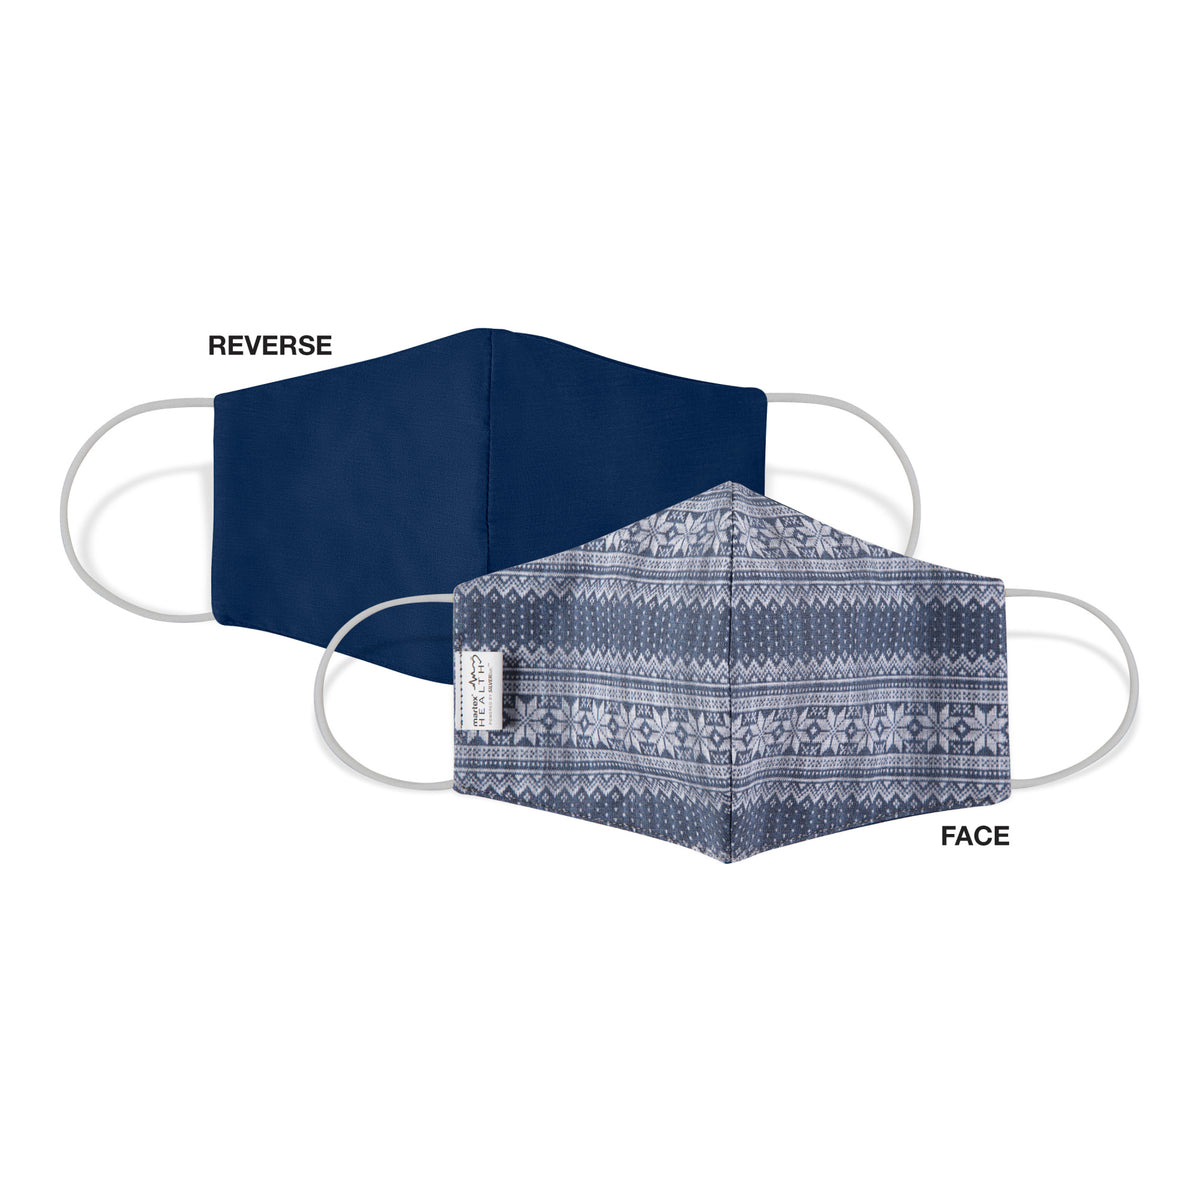 Martex Health Cozy Cabin Reversible Triple Layer Face Masks with SILVERbac Antimicrobial Technology